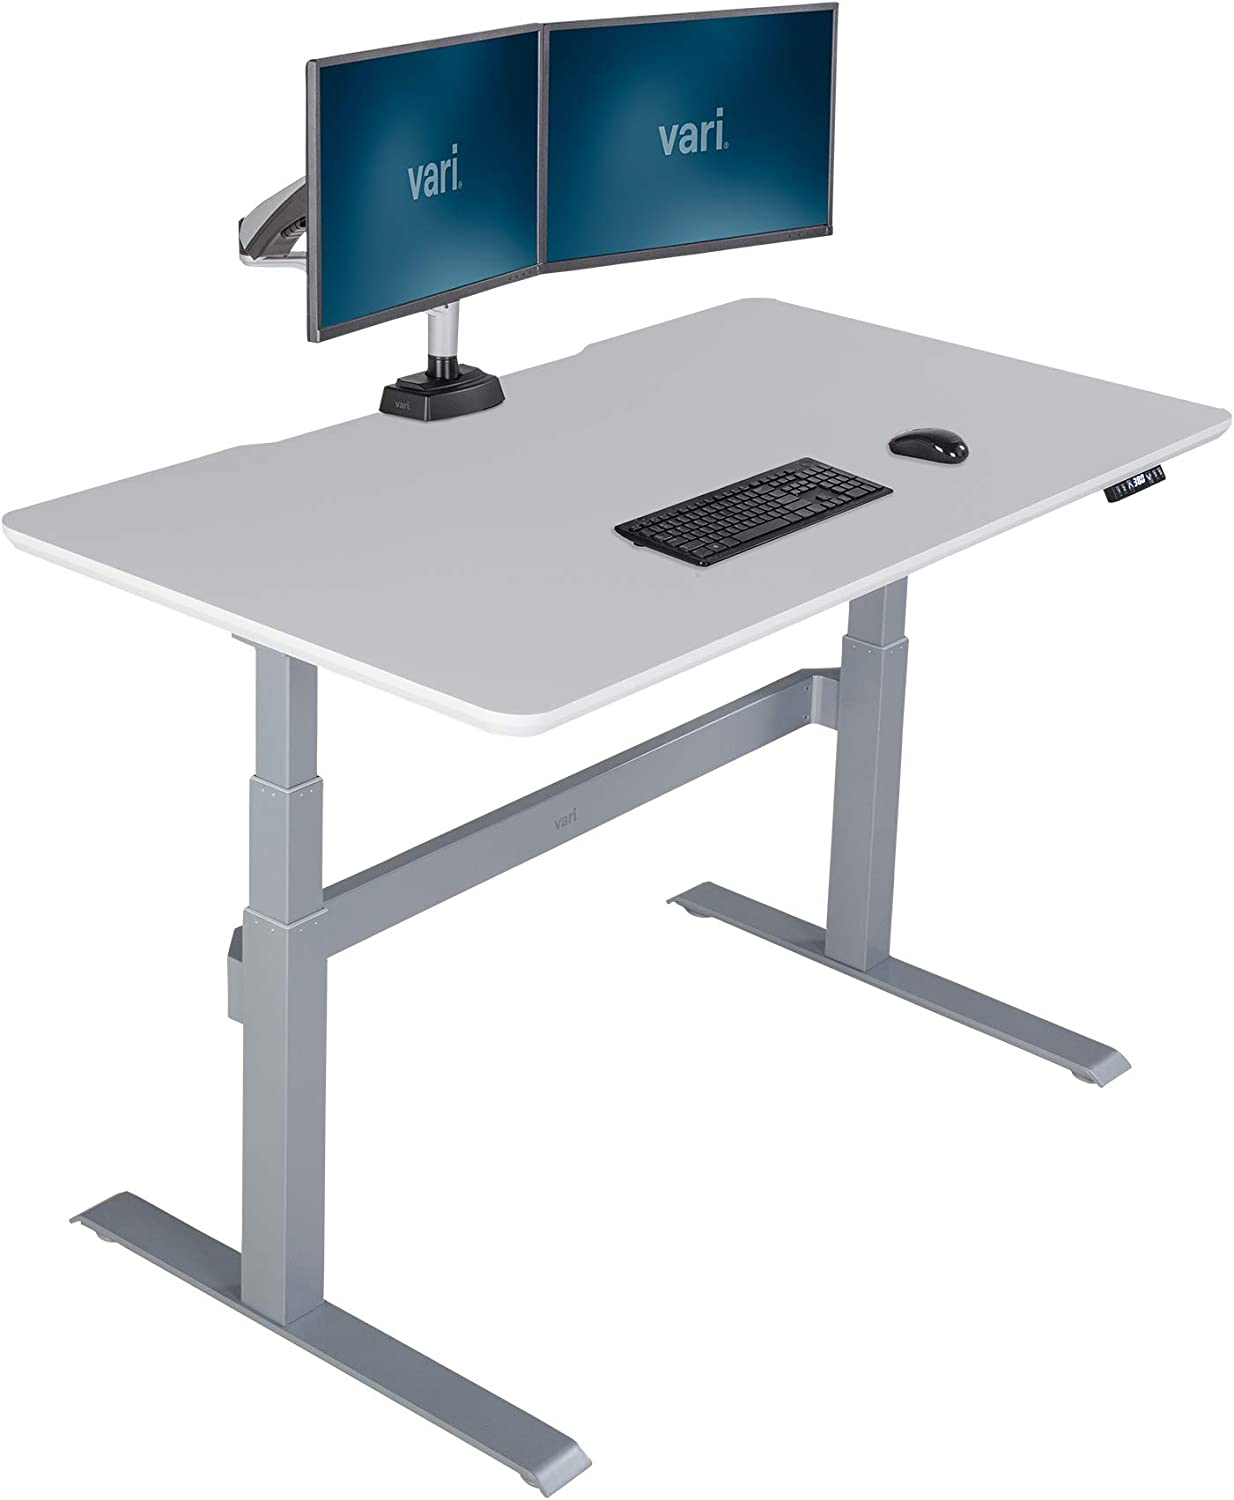 Vari Electric Standing Desk 60 - Sit to Stand Desk - 3 Button Memory Settings - Includes Crossbar w/Cable Management Tray